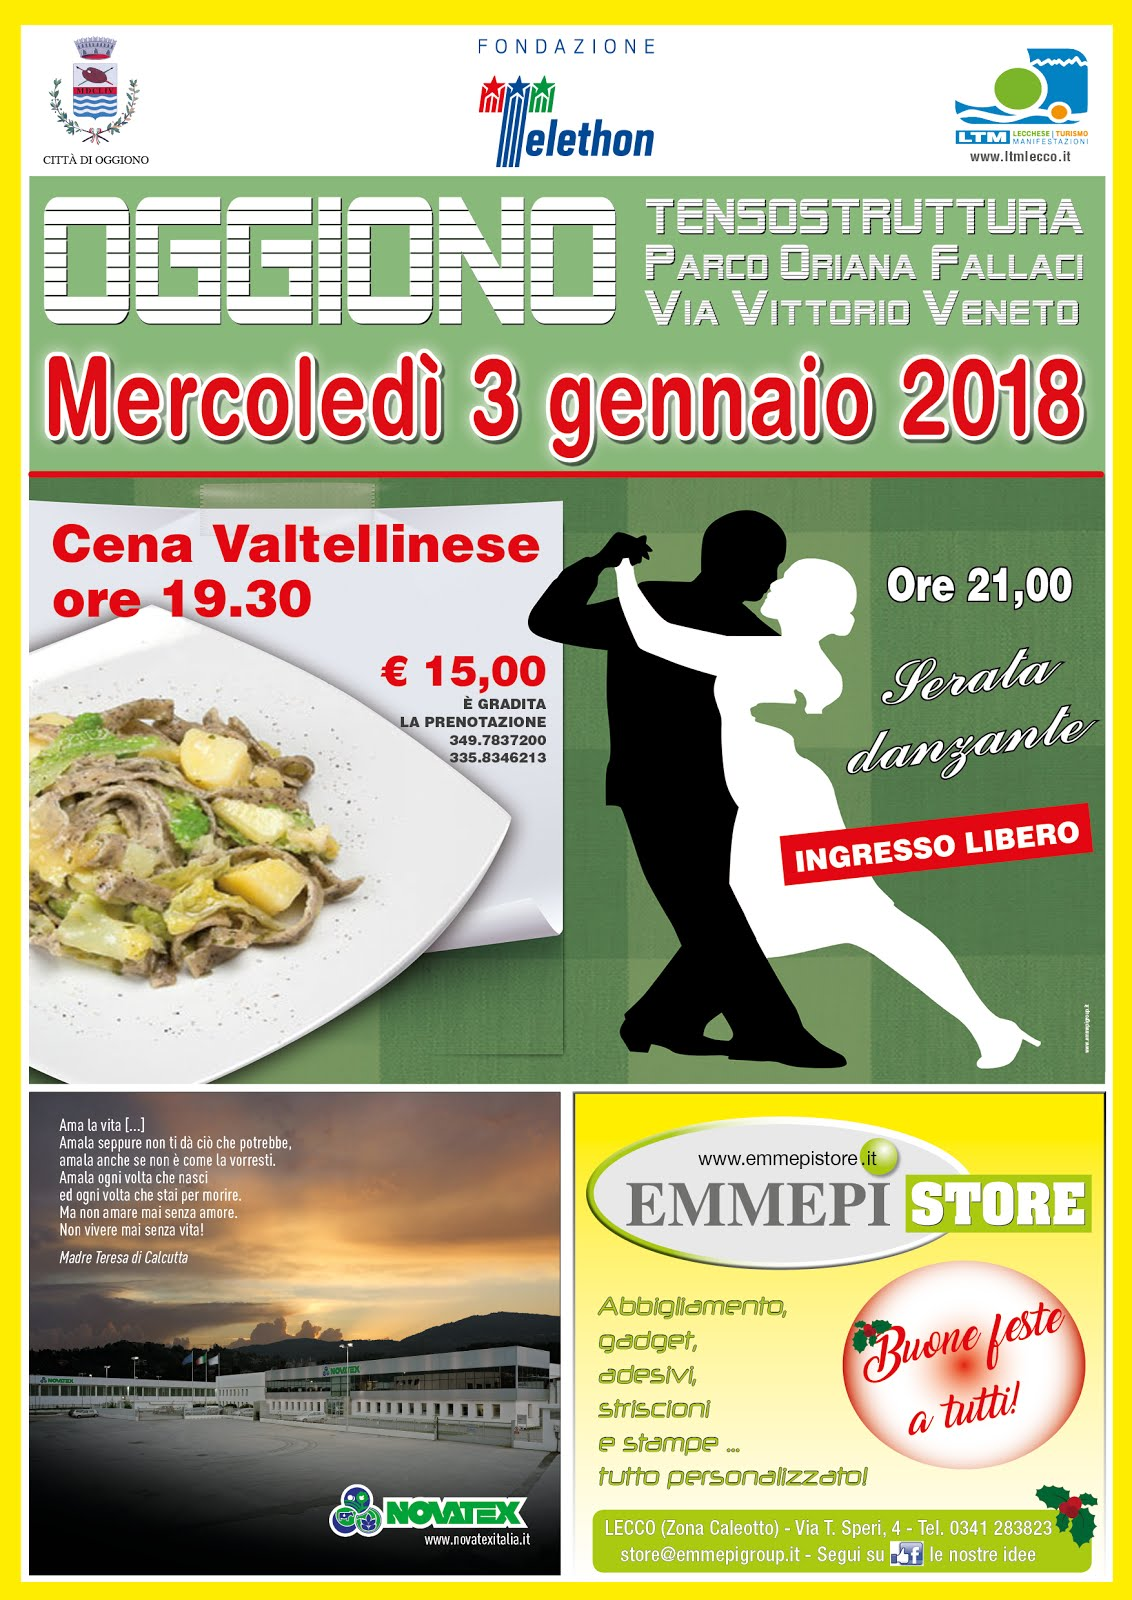 Serata benefica a Oggiono